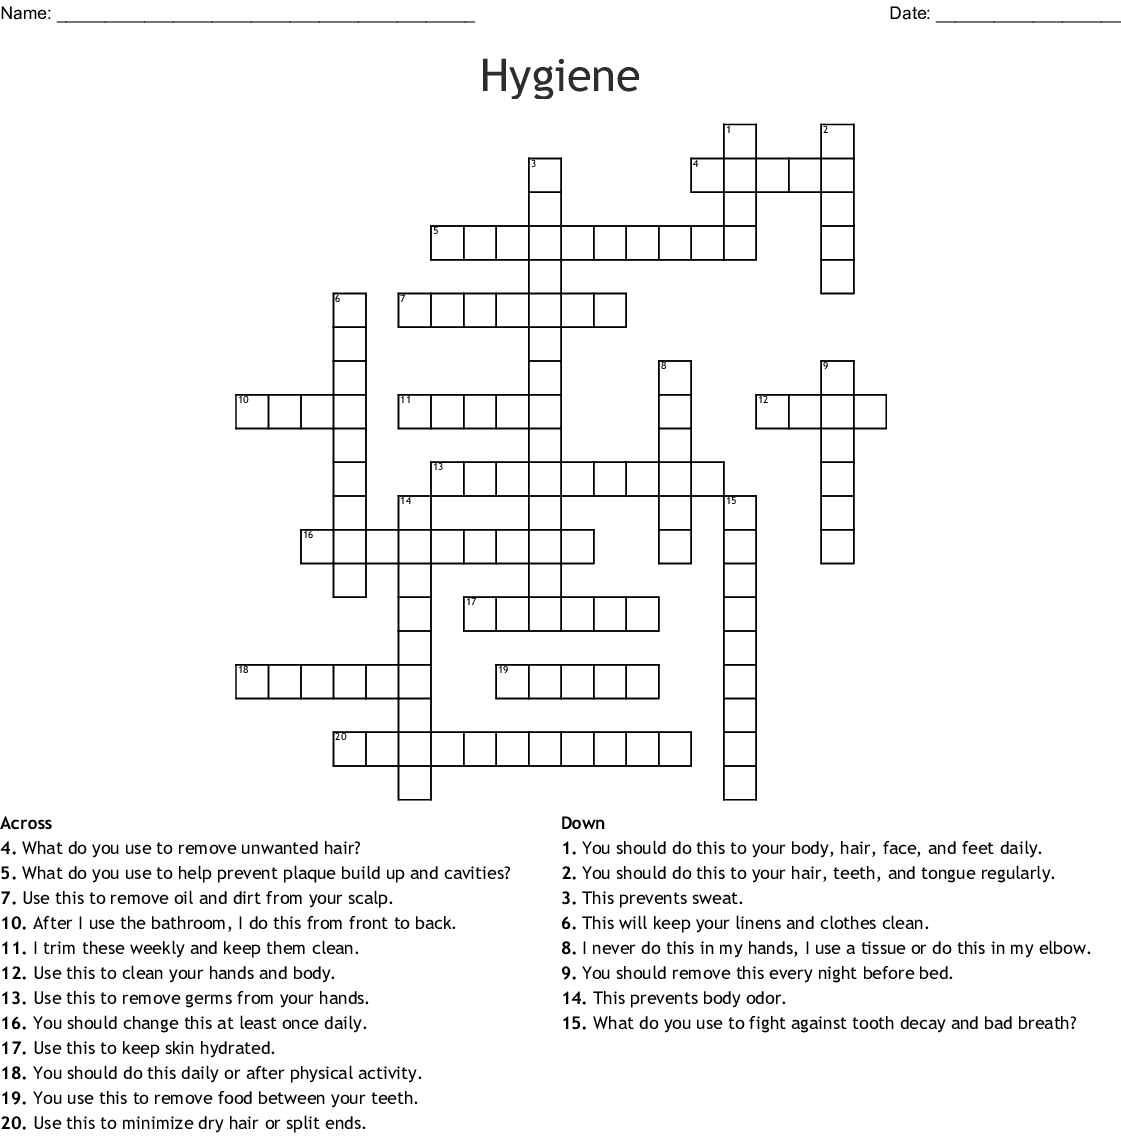 Hygiene Crossword